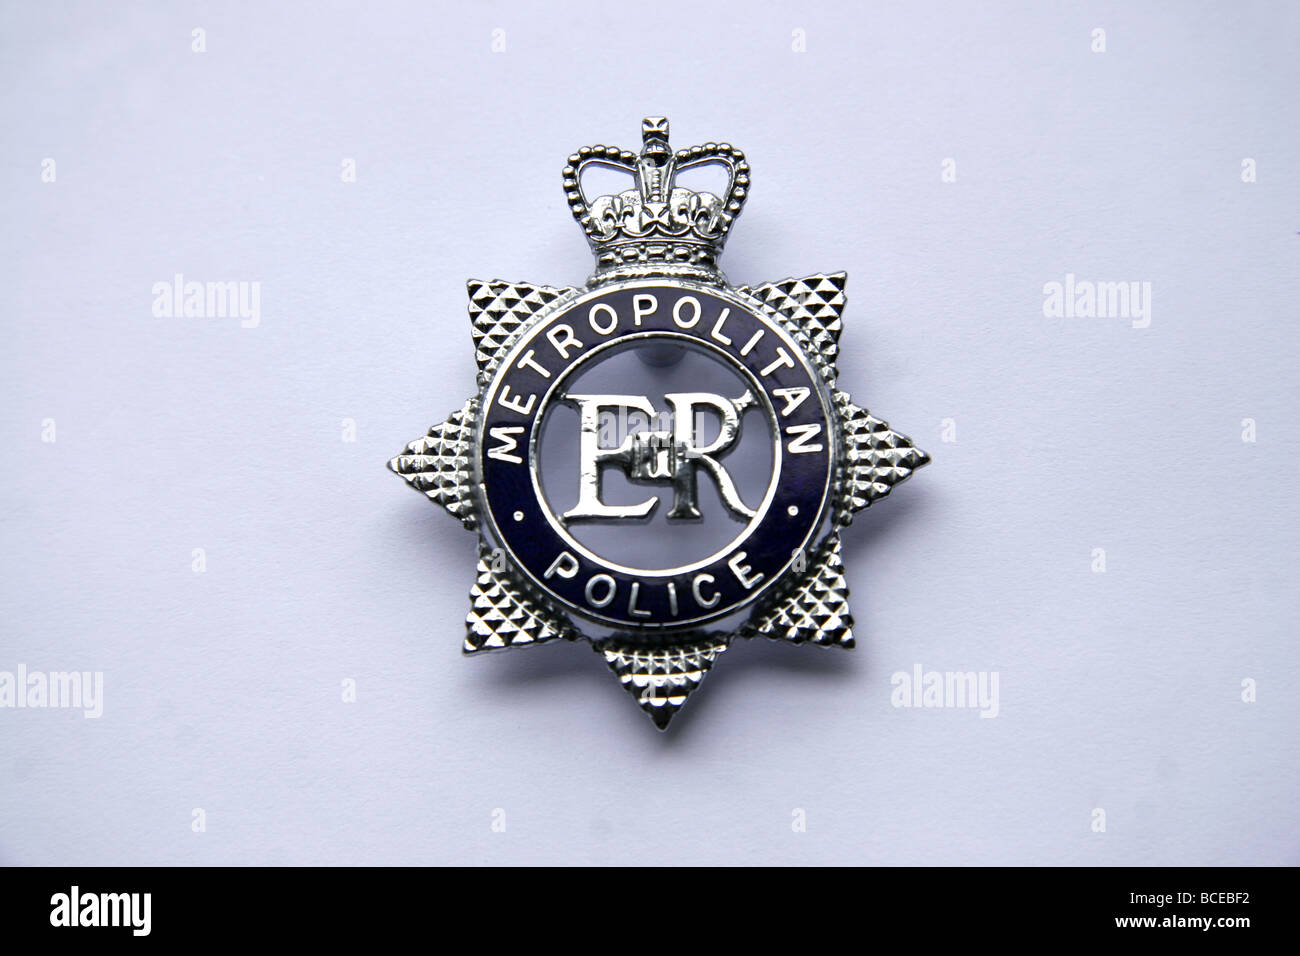 london metropolitan police badge stock photo royalty free image